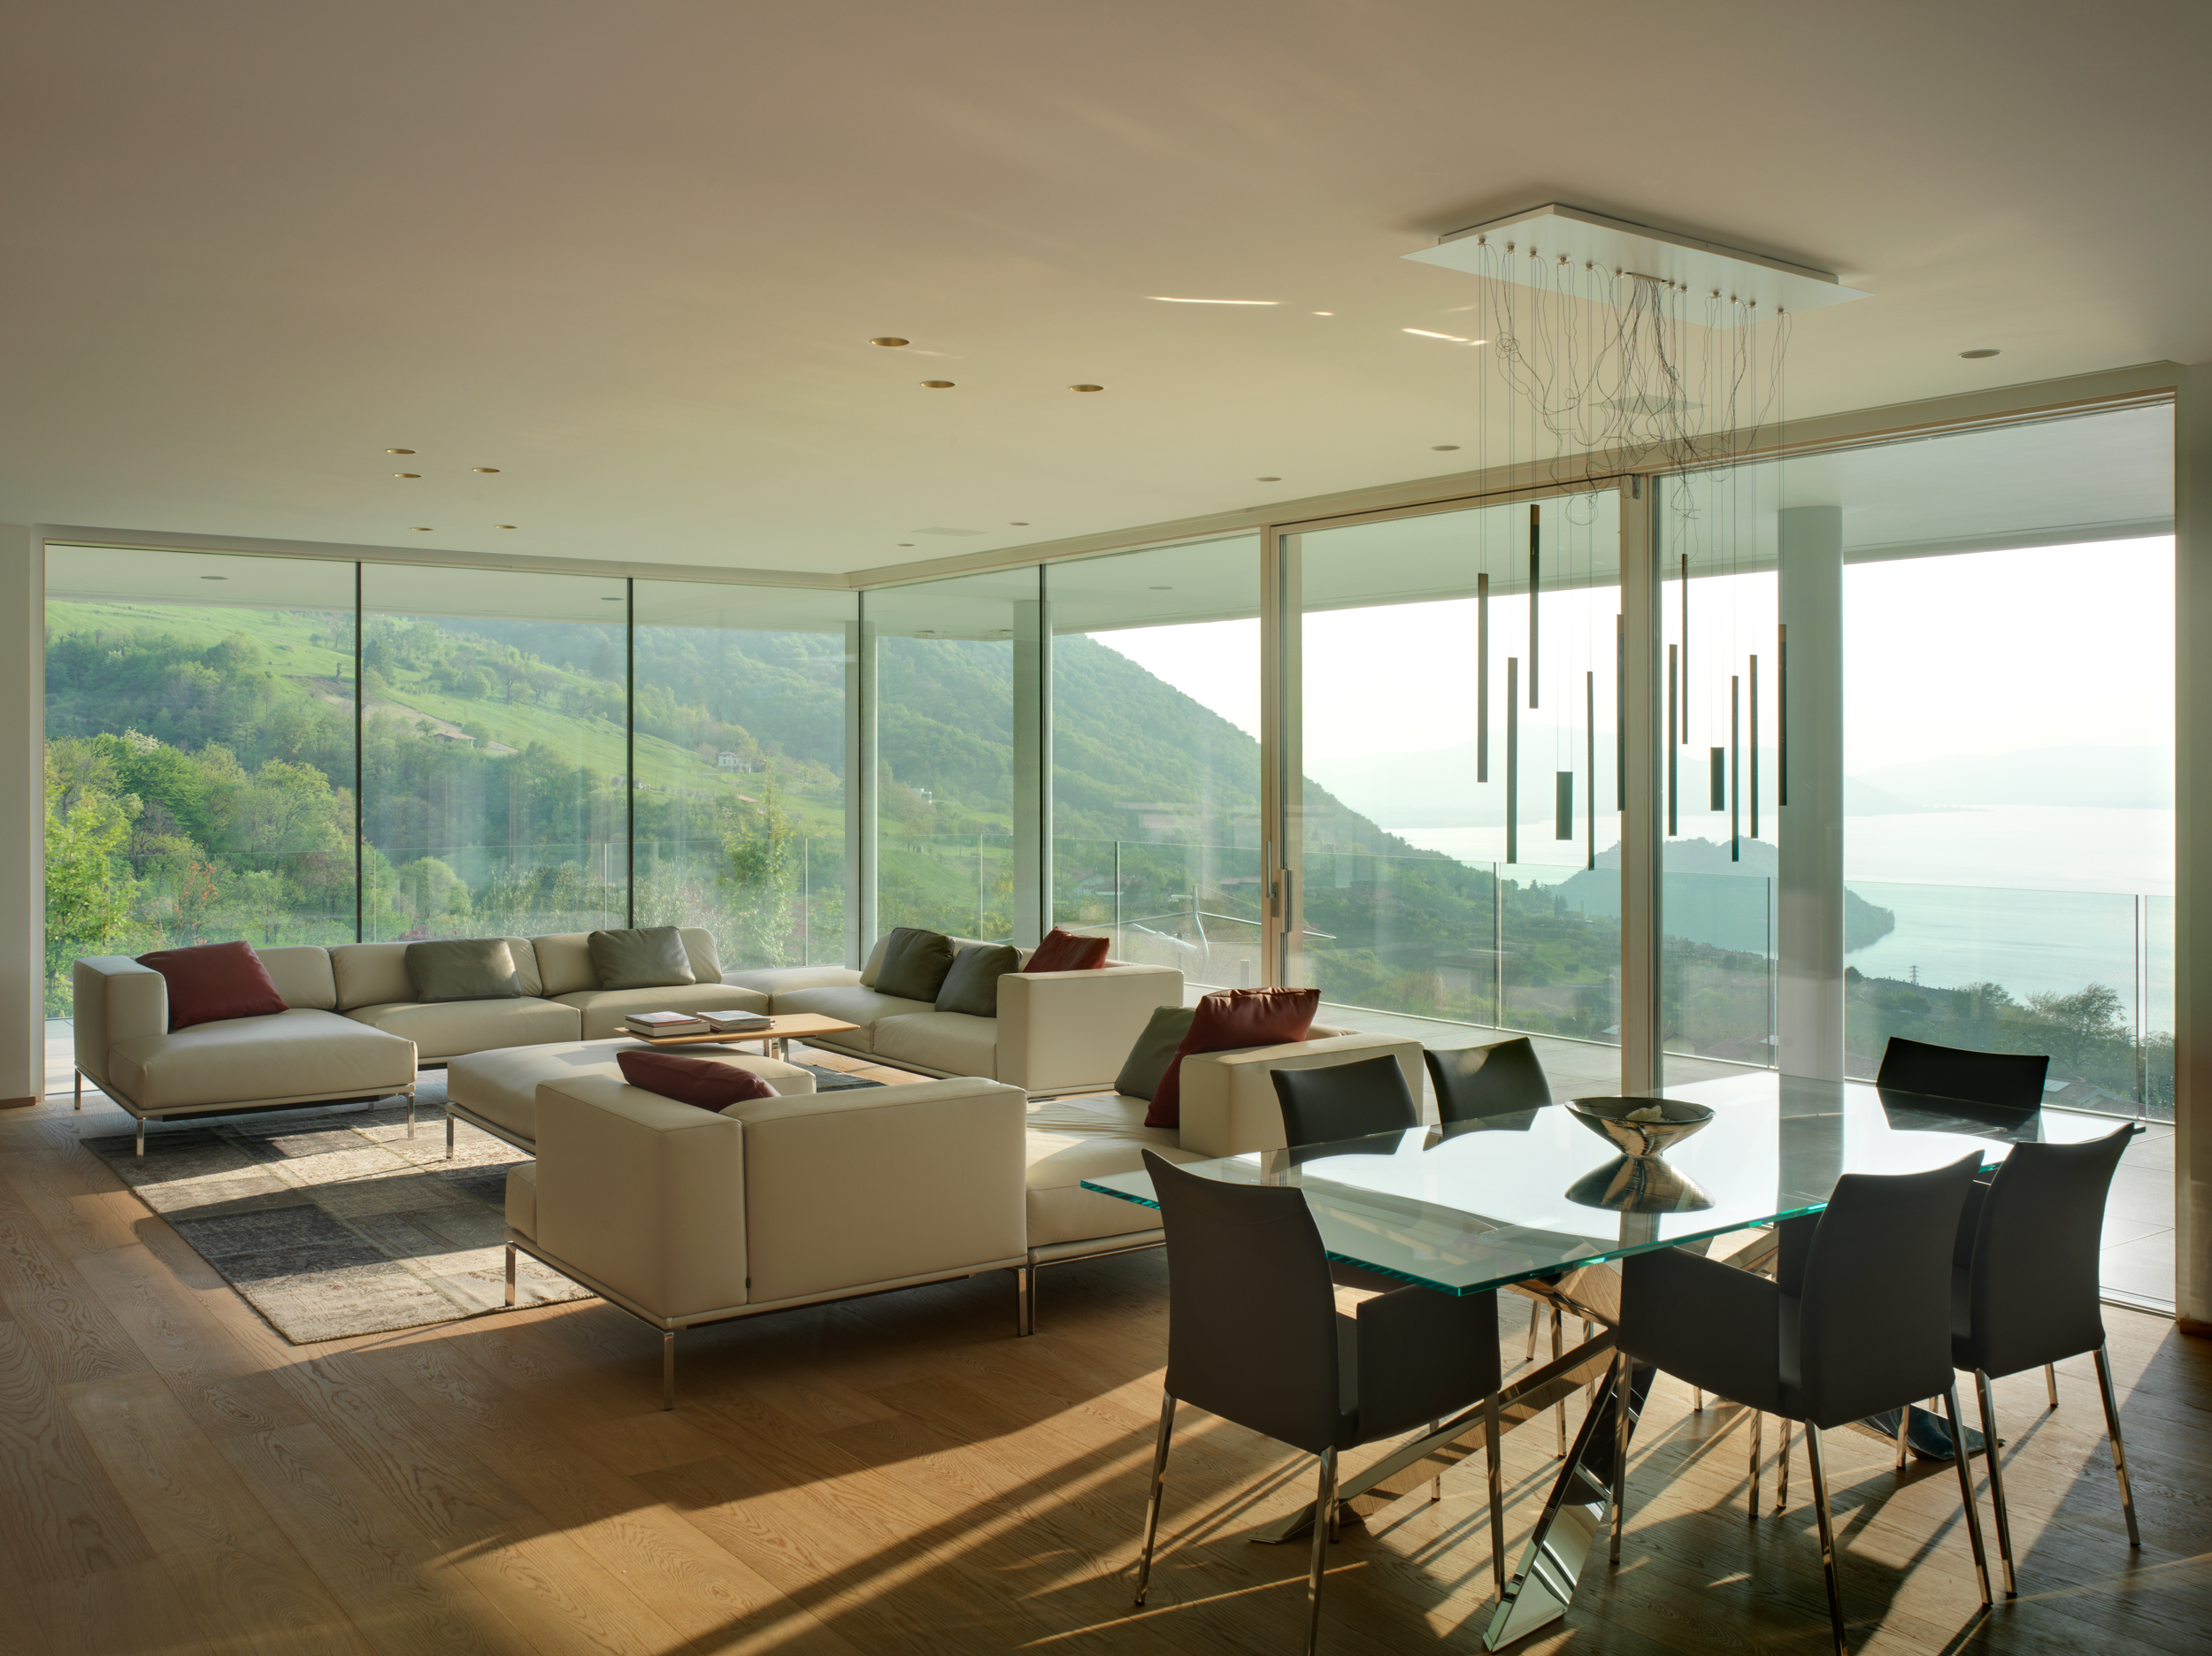 Floor to ceiling minimal frame glass windows and and oversized lift slide door provide unobstructed views